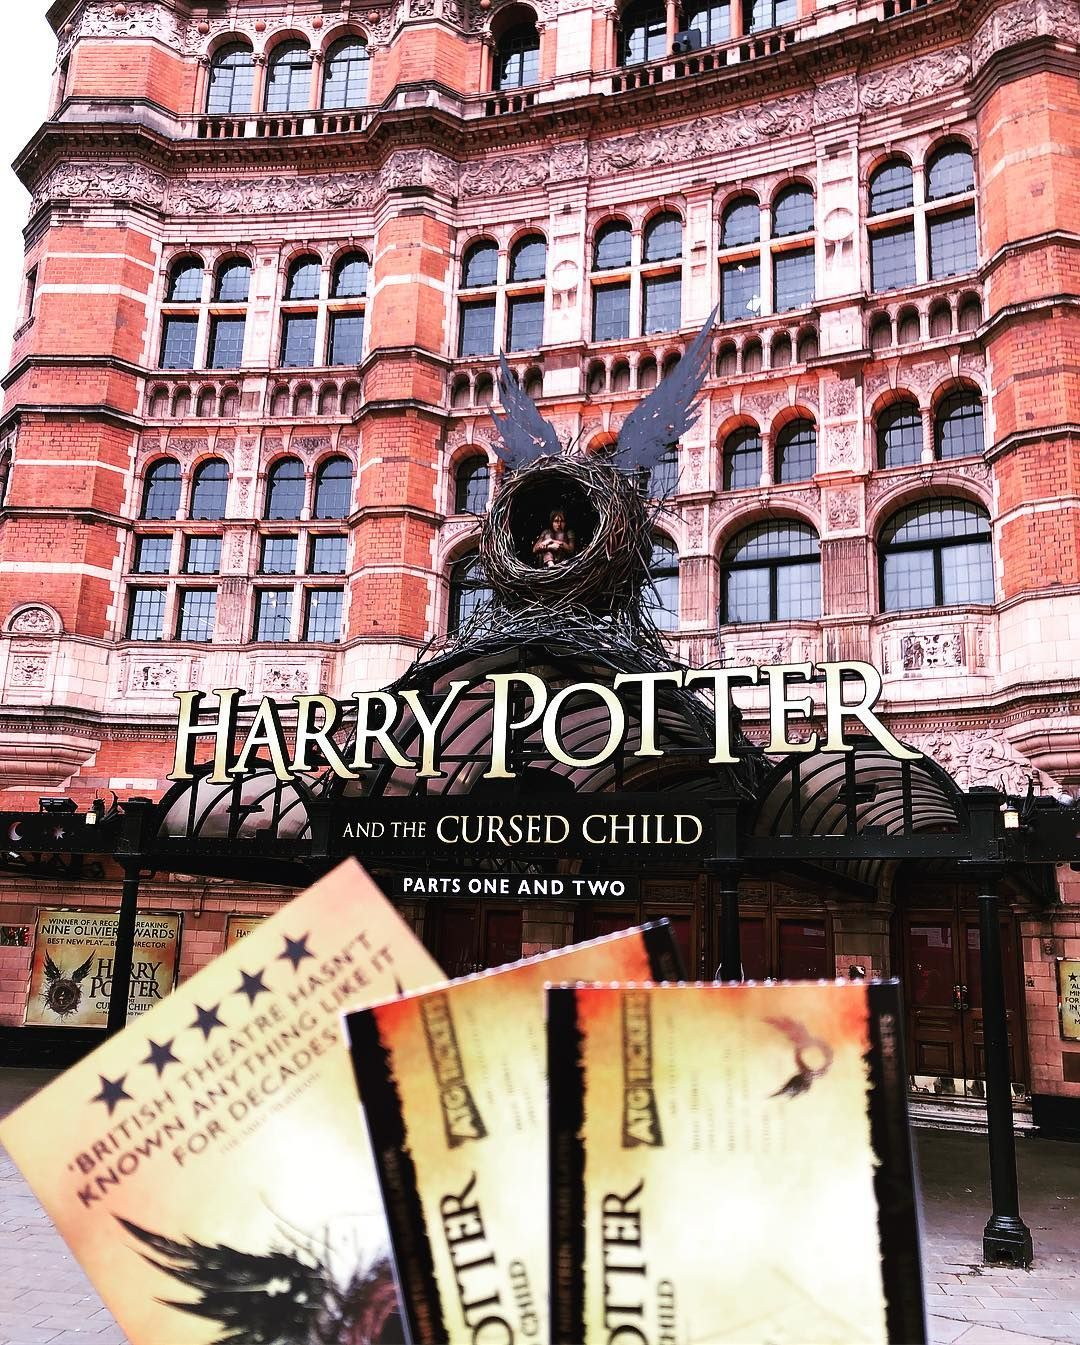 My Travels Harry Potter And The Cursed Child London United Kingdom Mytravels Imieiviaggi Har